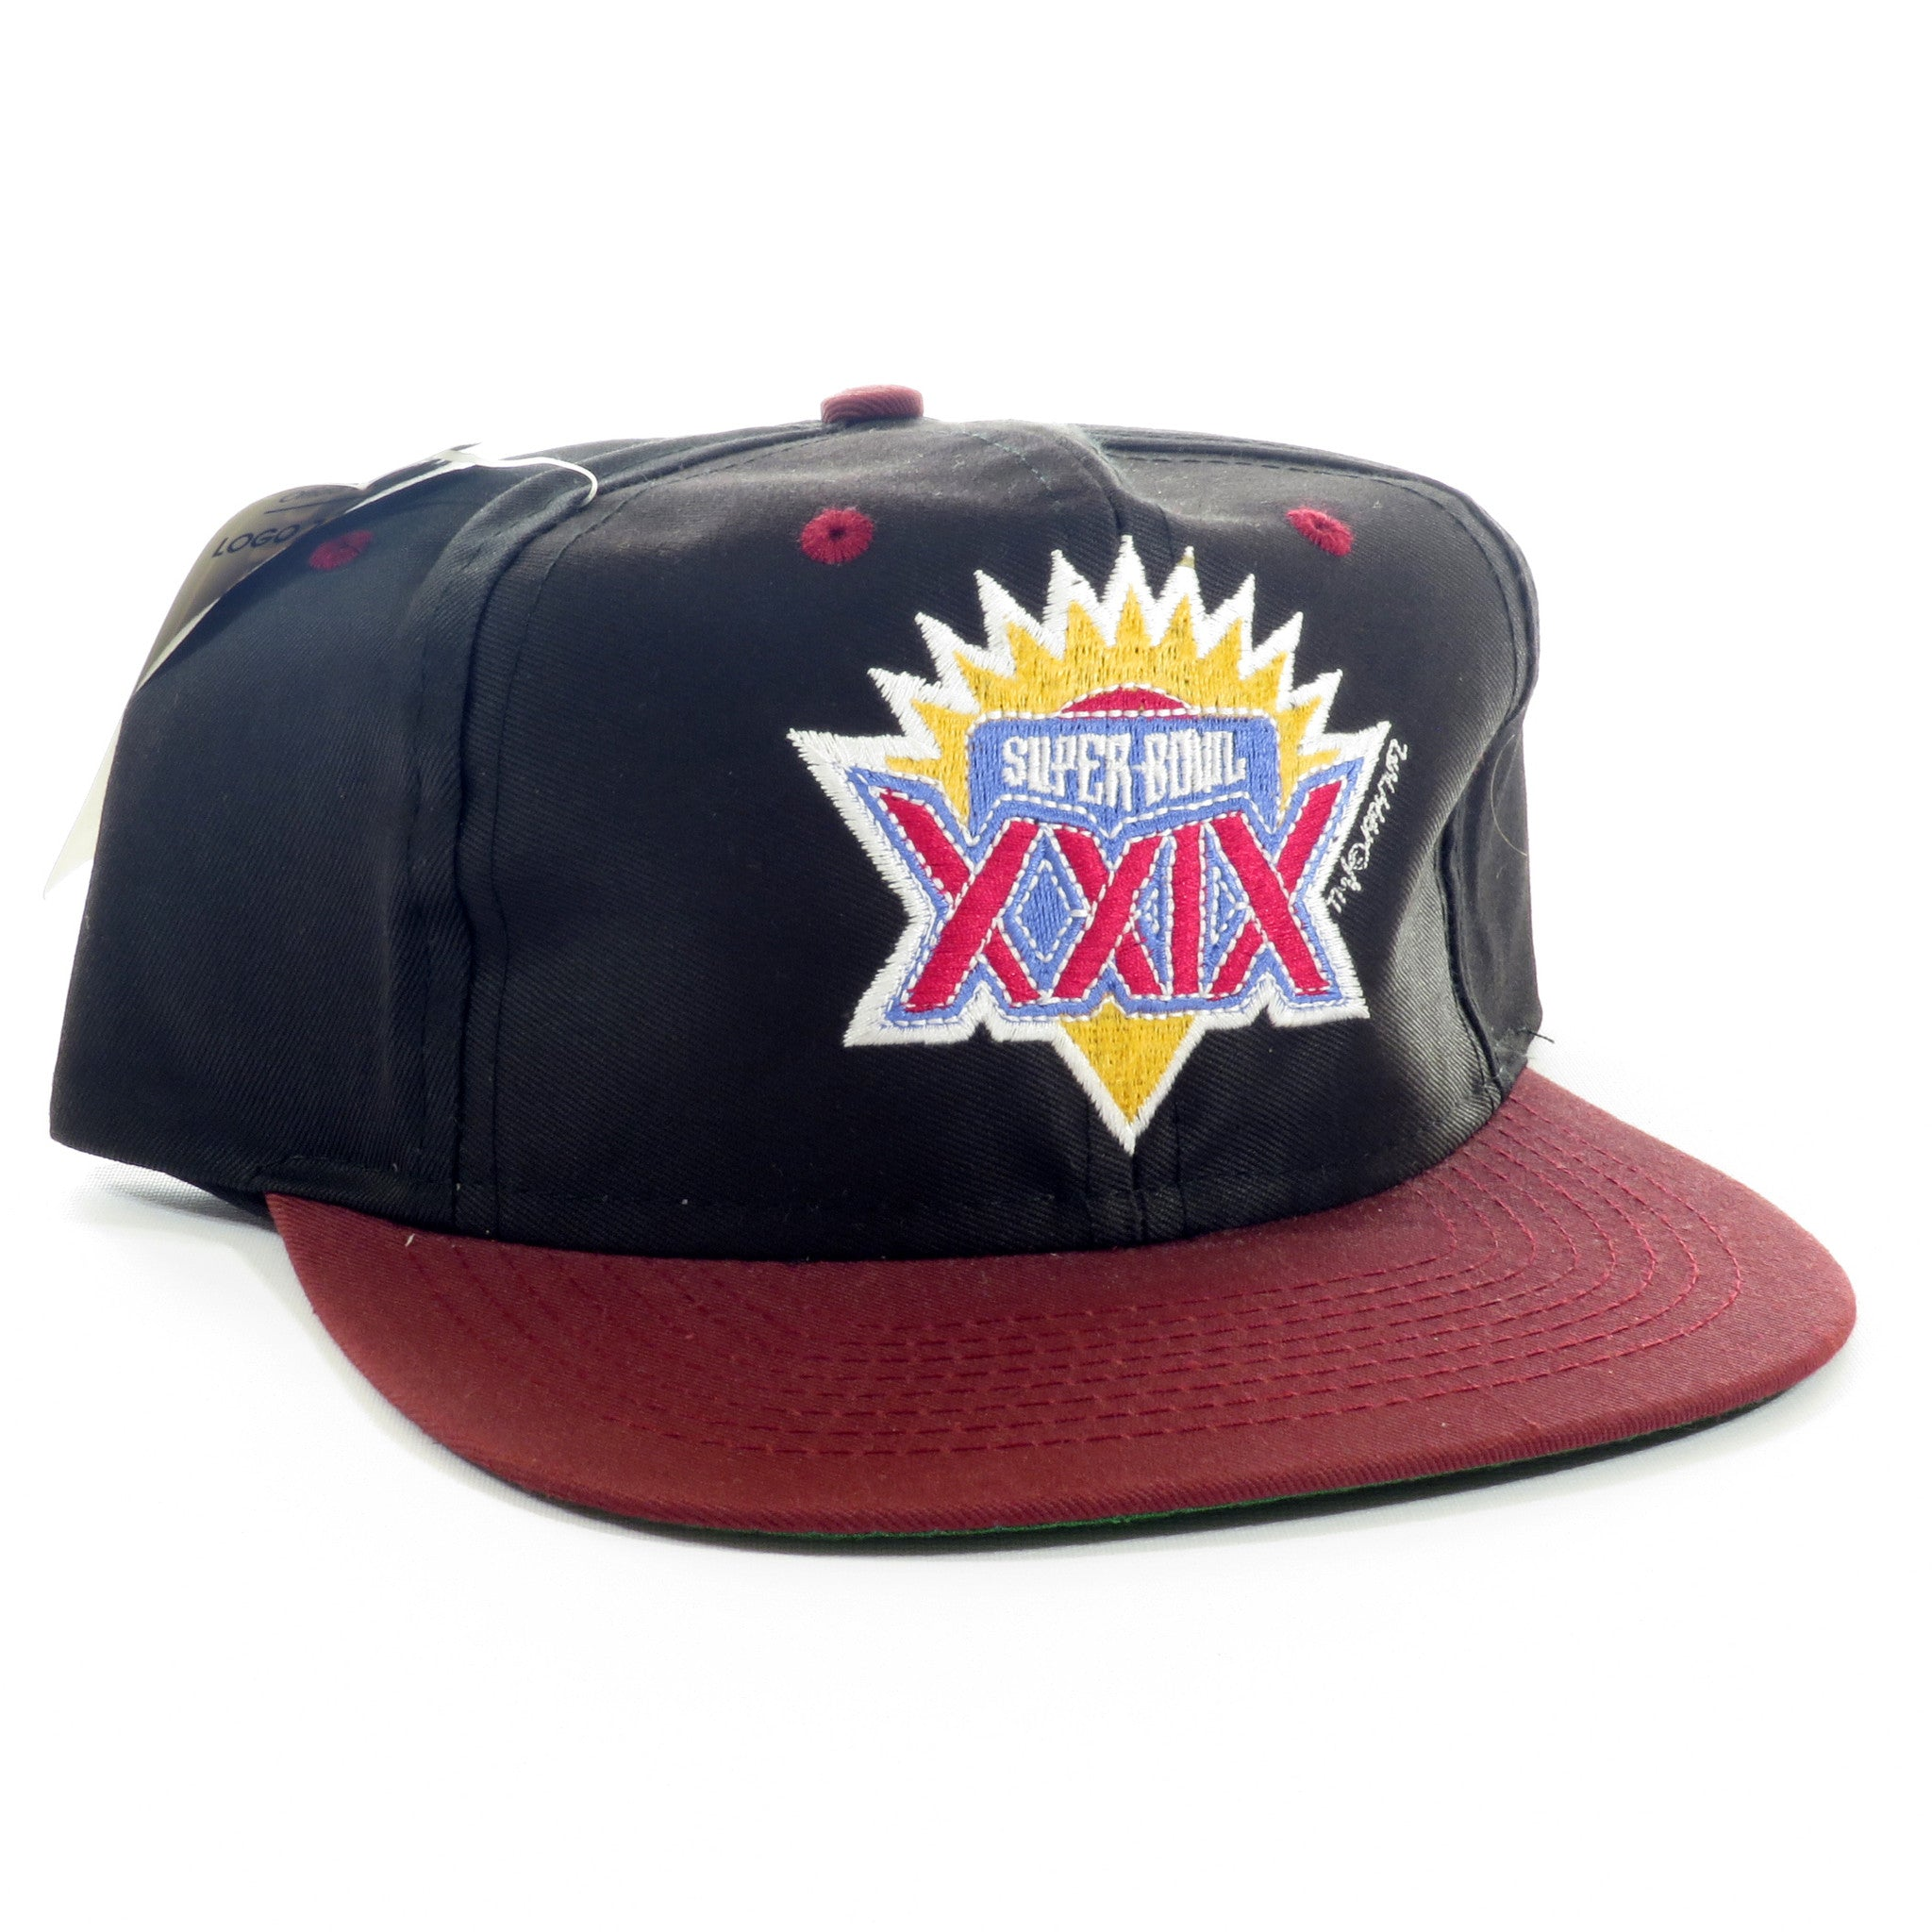 Super Bowl XXIX Logo 7 Snapback Hat